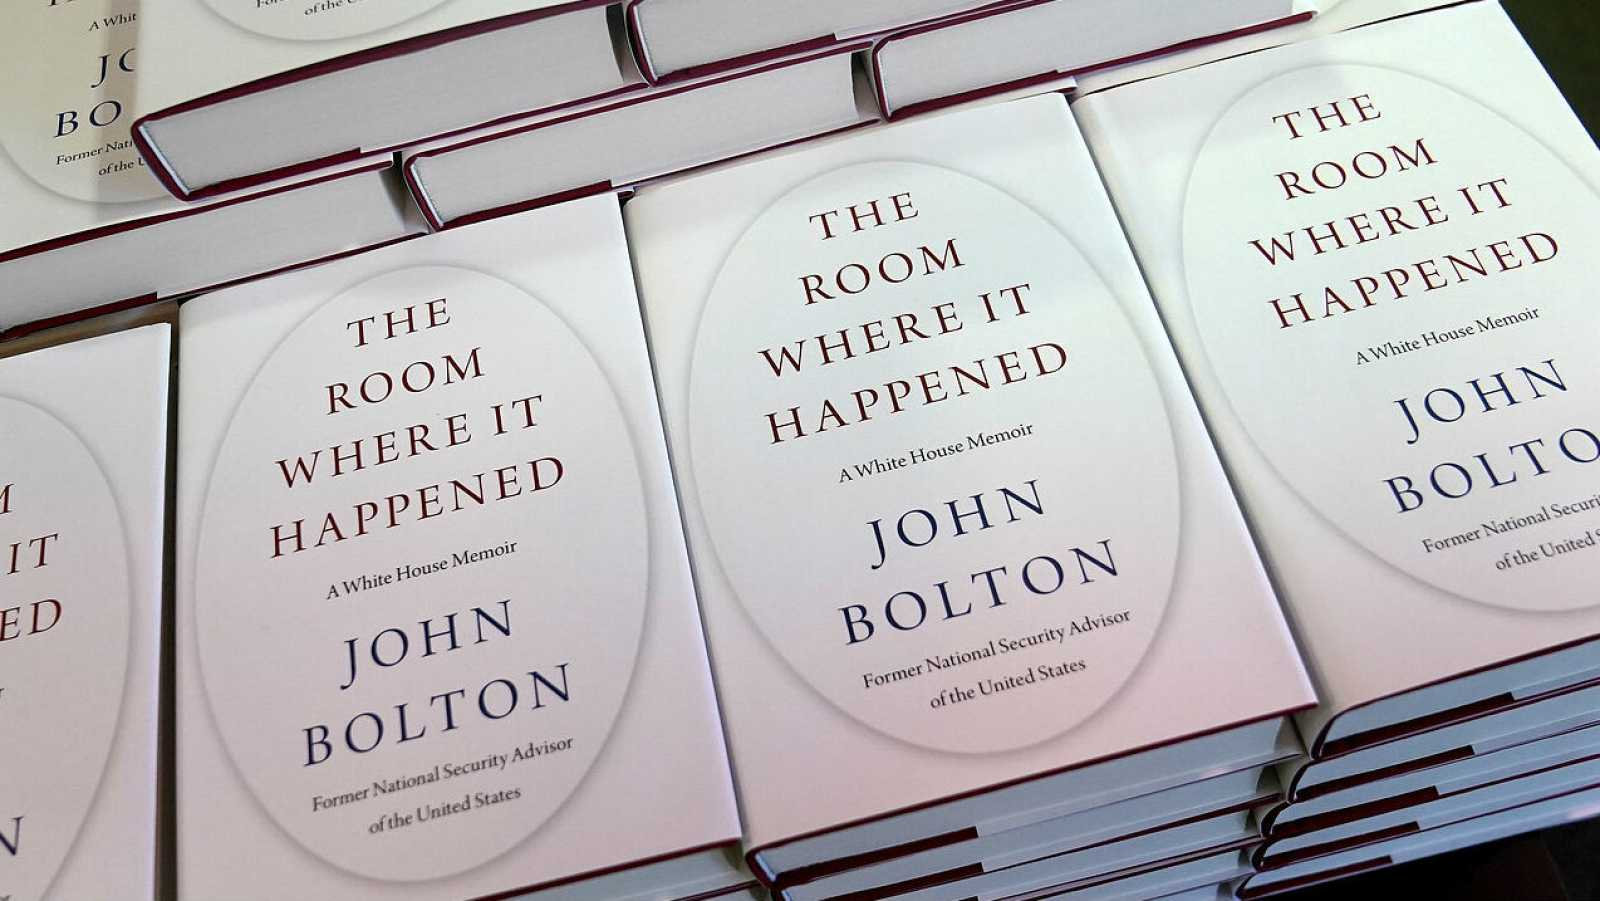 Copias del libro de John Bolton 'The Room Where It Happened' se muestran en exhibición en una librería de Manhattan, en la ciudad de Nueva York, Nueva York, EE. UU.